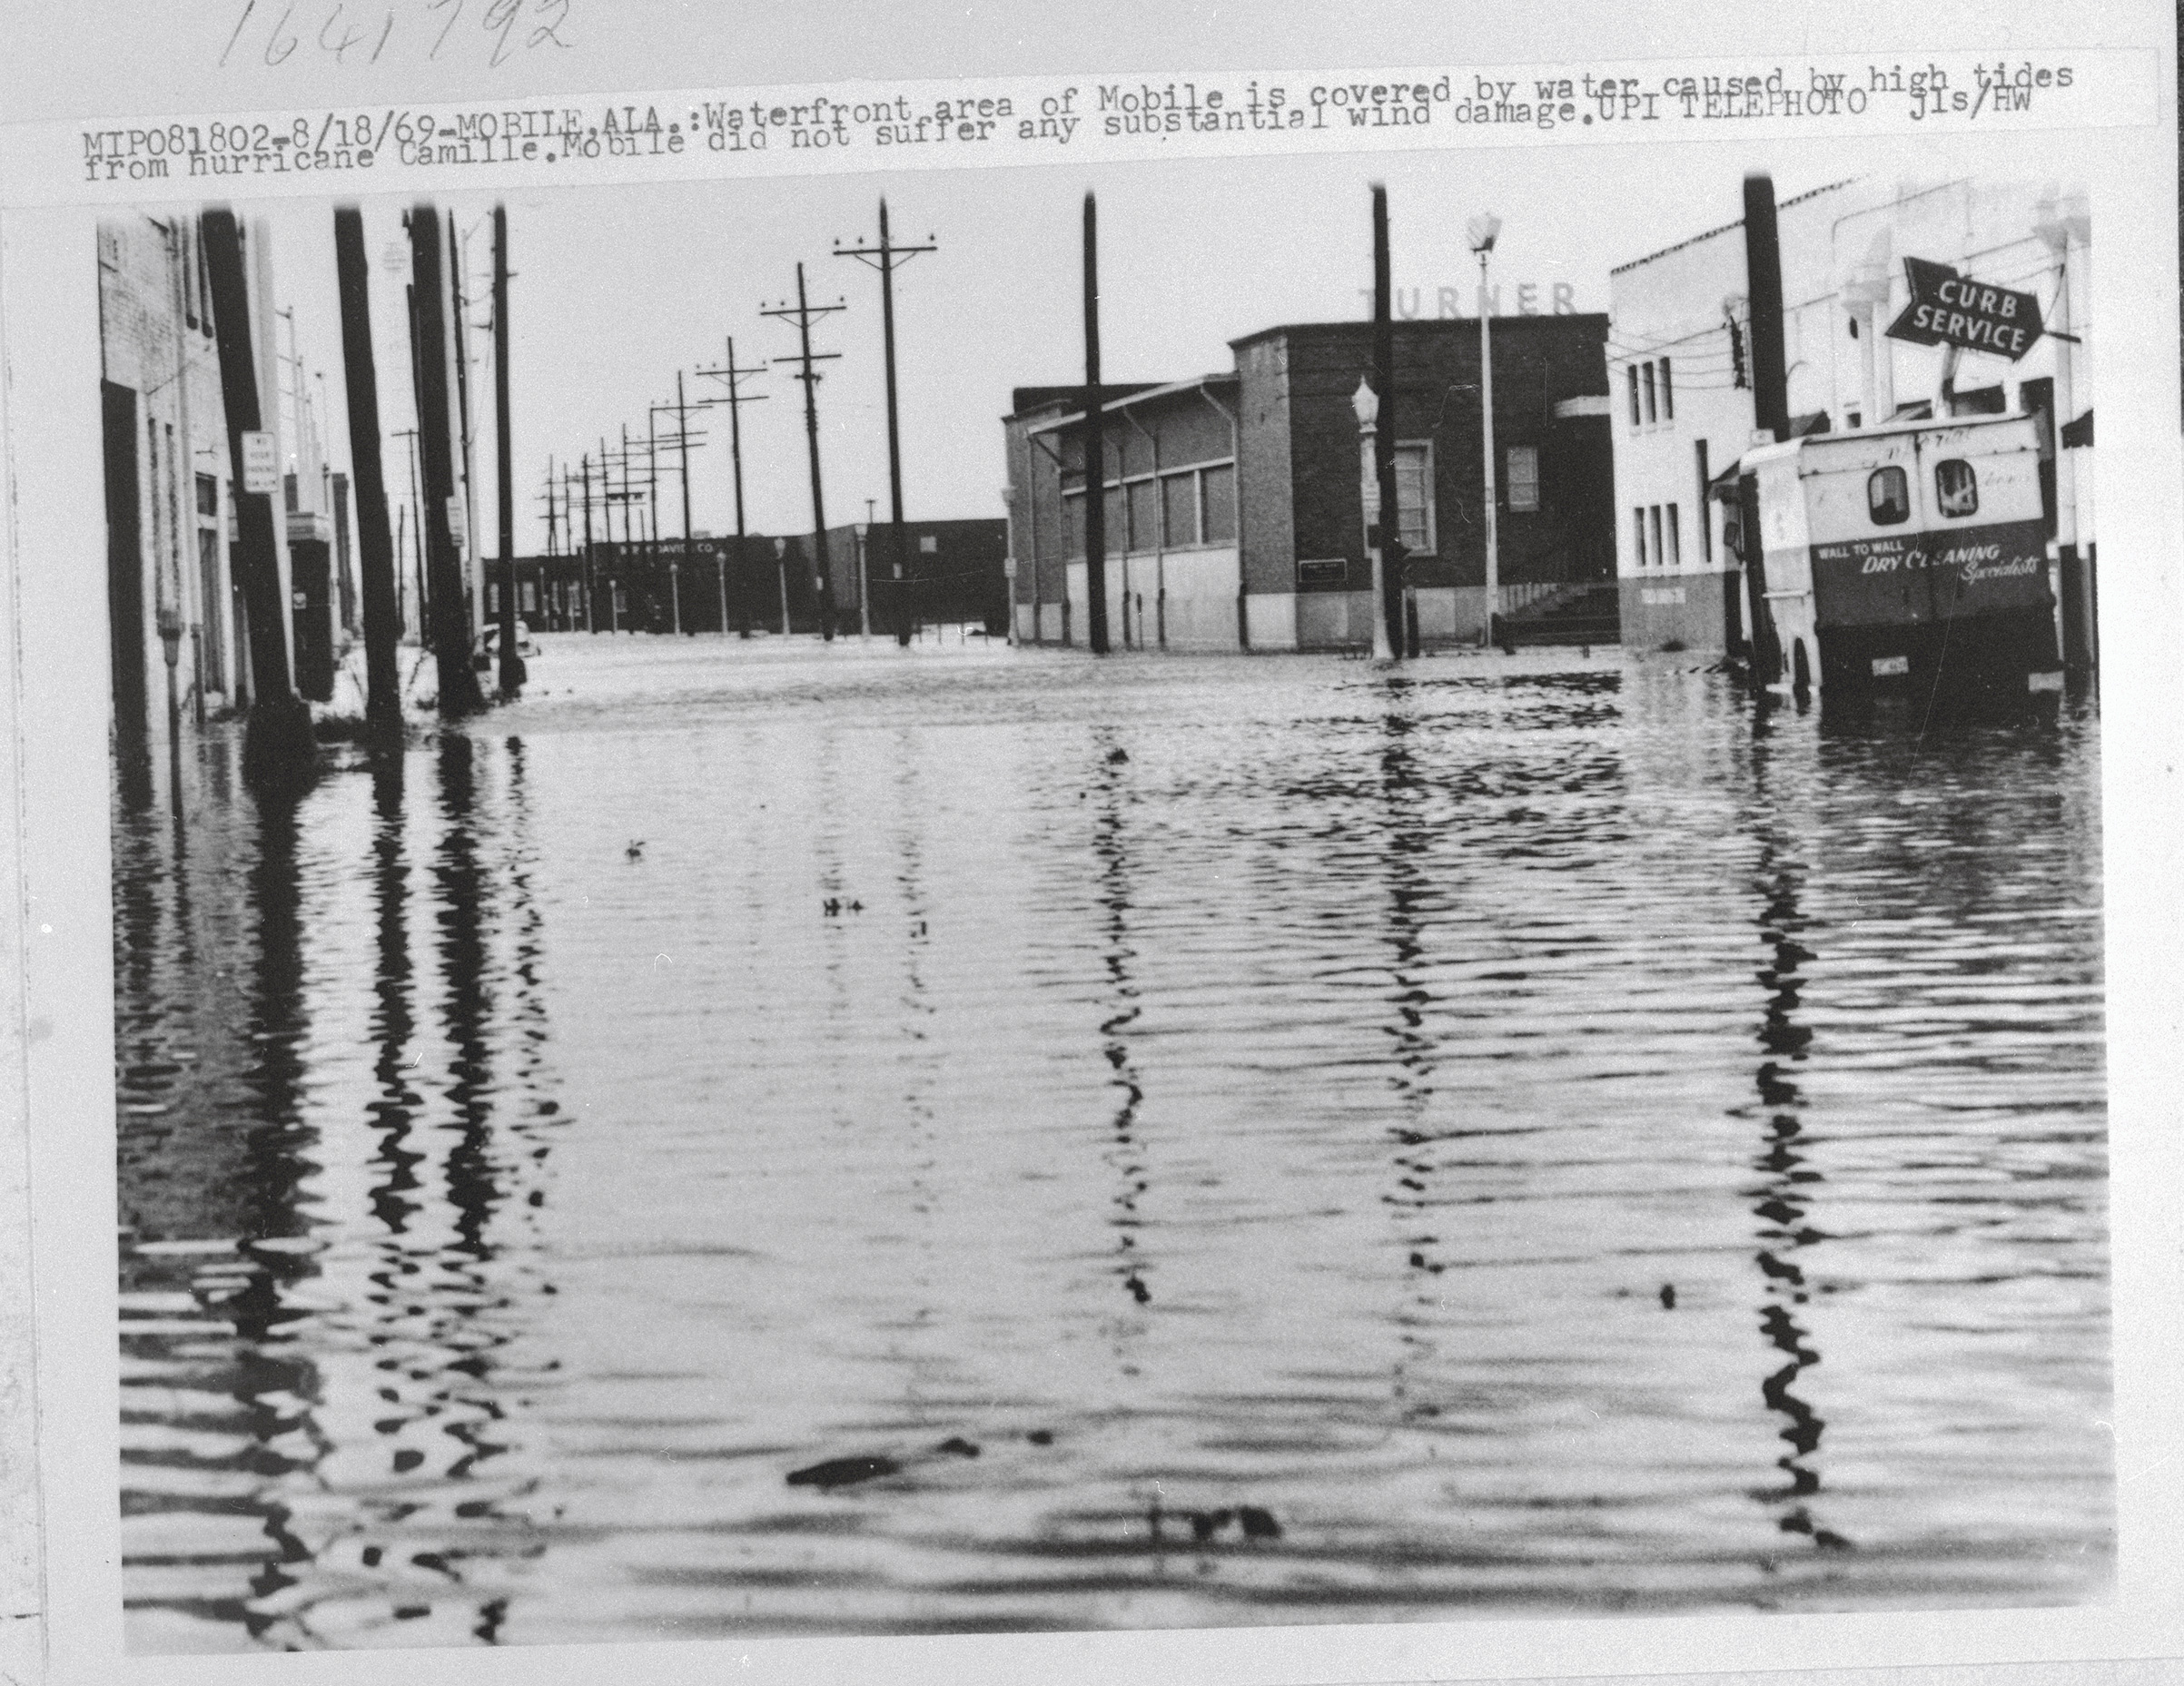 Waterfront area of Mobile is covered by water caused by high tides from hurricane Camille. Mobile did not suffer any substantial wind damage.